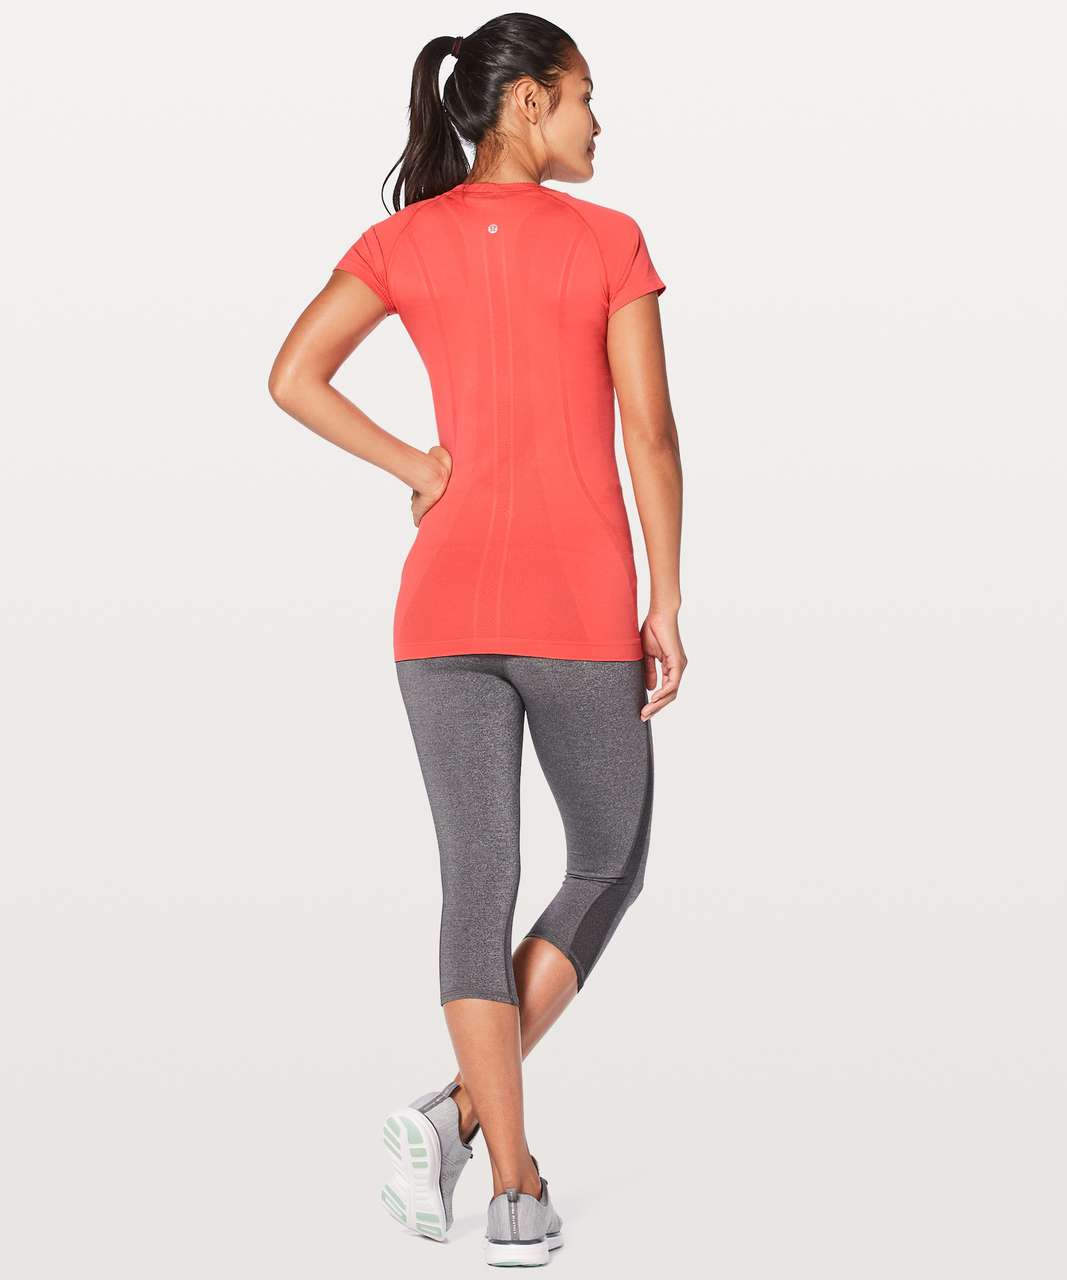 Lululemon Swiftly Tech Short Sleeve Crew - Vermillion